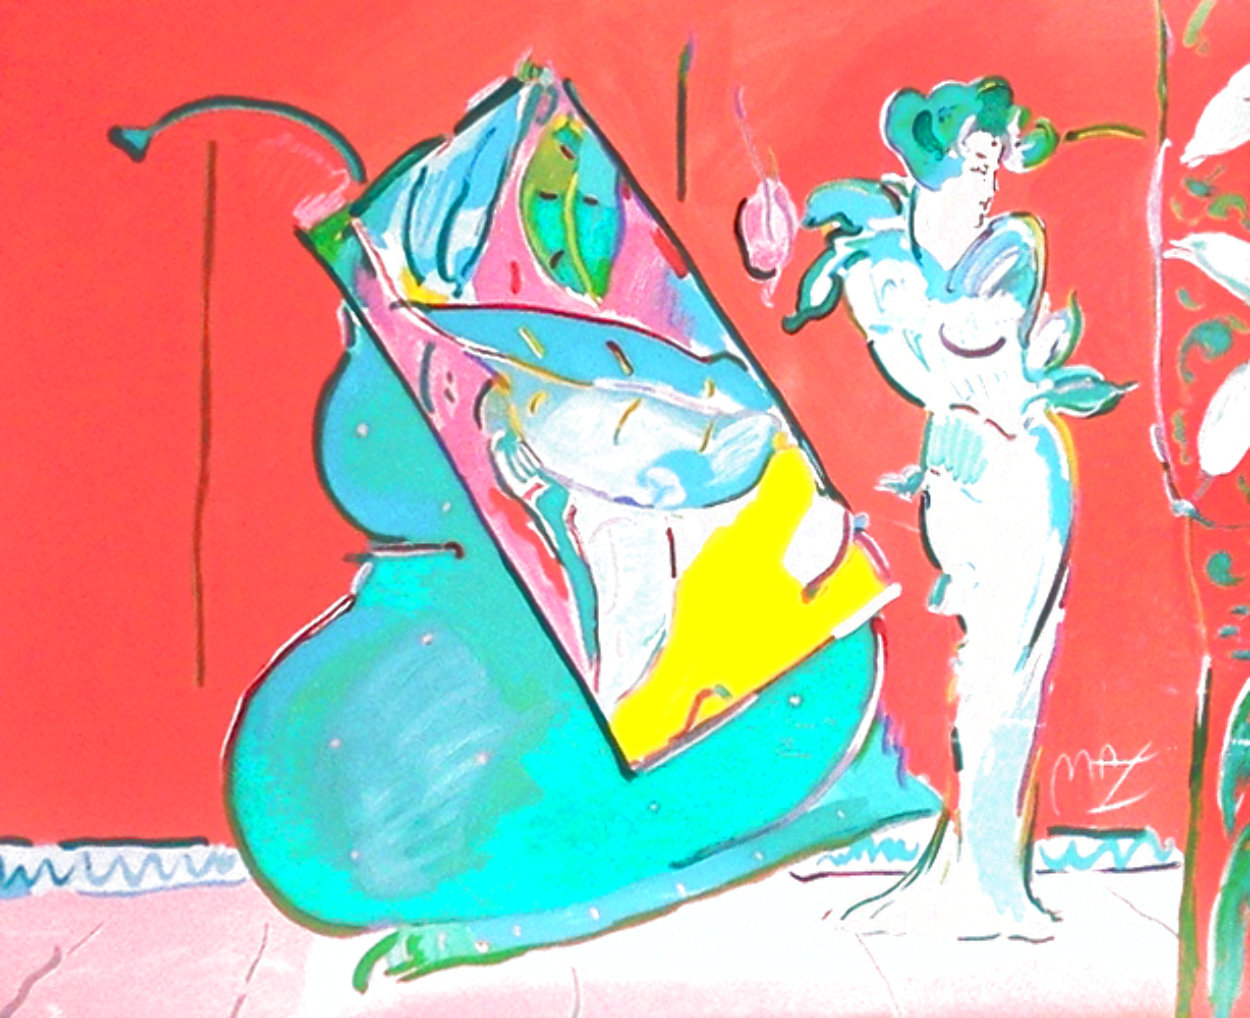 Les Mondrian Ladies 1988 Huge Limited Edition Print by Peter Max